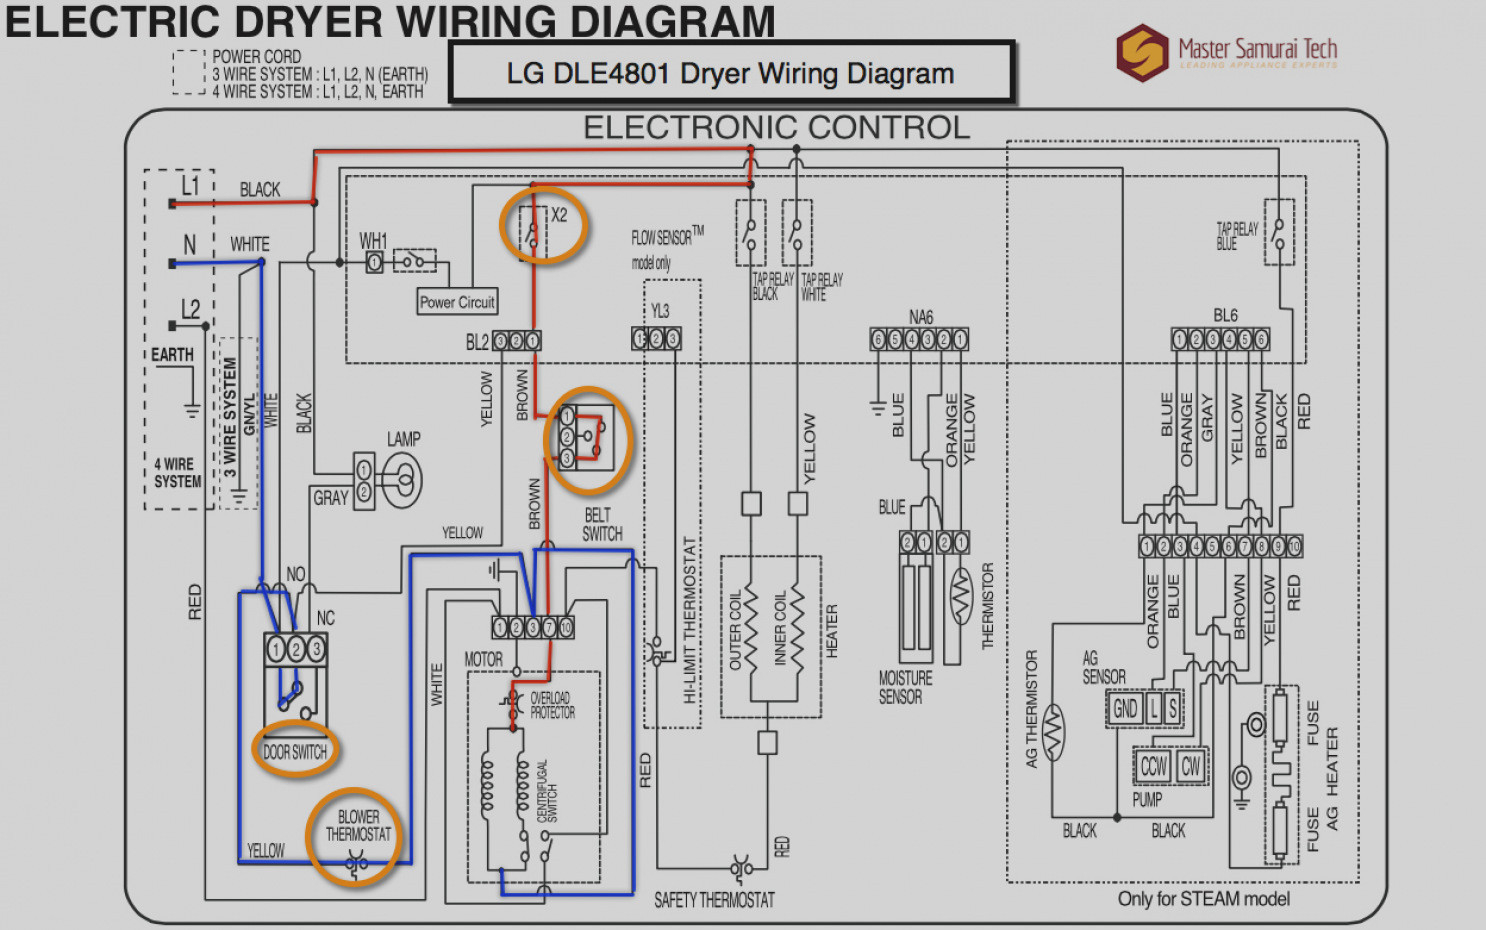 FX_8078] Whirlpool Cabrio Dryer Wiring Diagram Together With Whirlpool  Dryer Wiring DiagramGroa Obenz Dimet Inrebe Mohammedshrine Librar Wiring 101